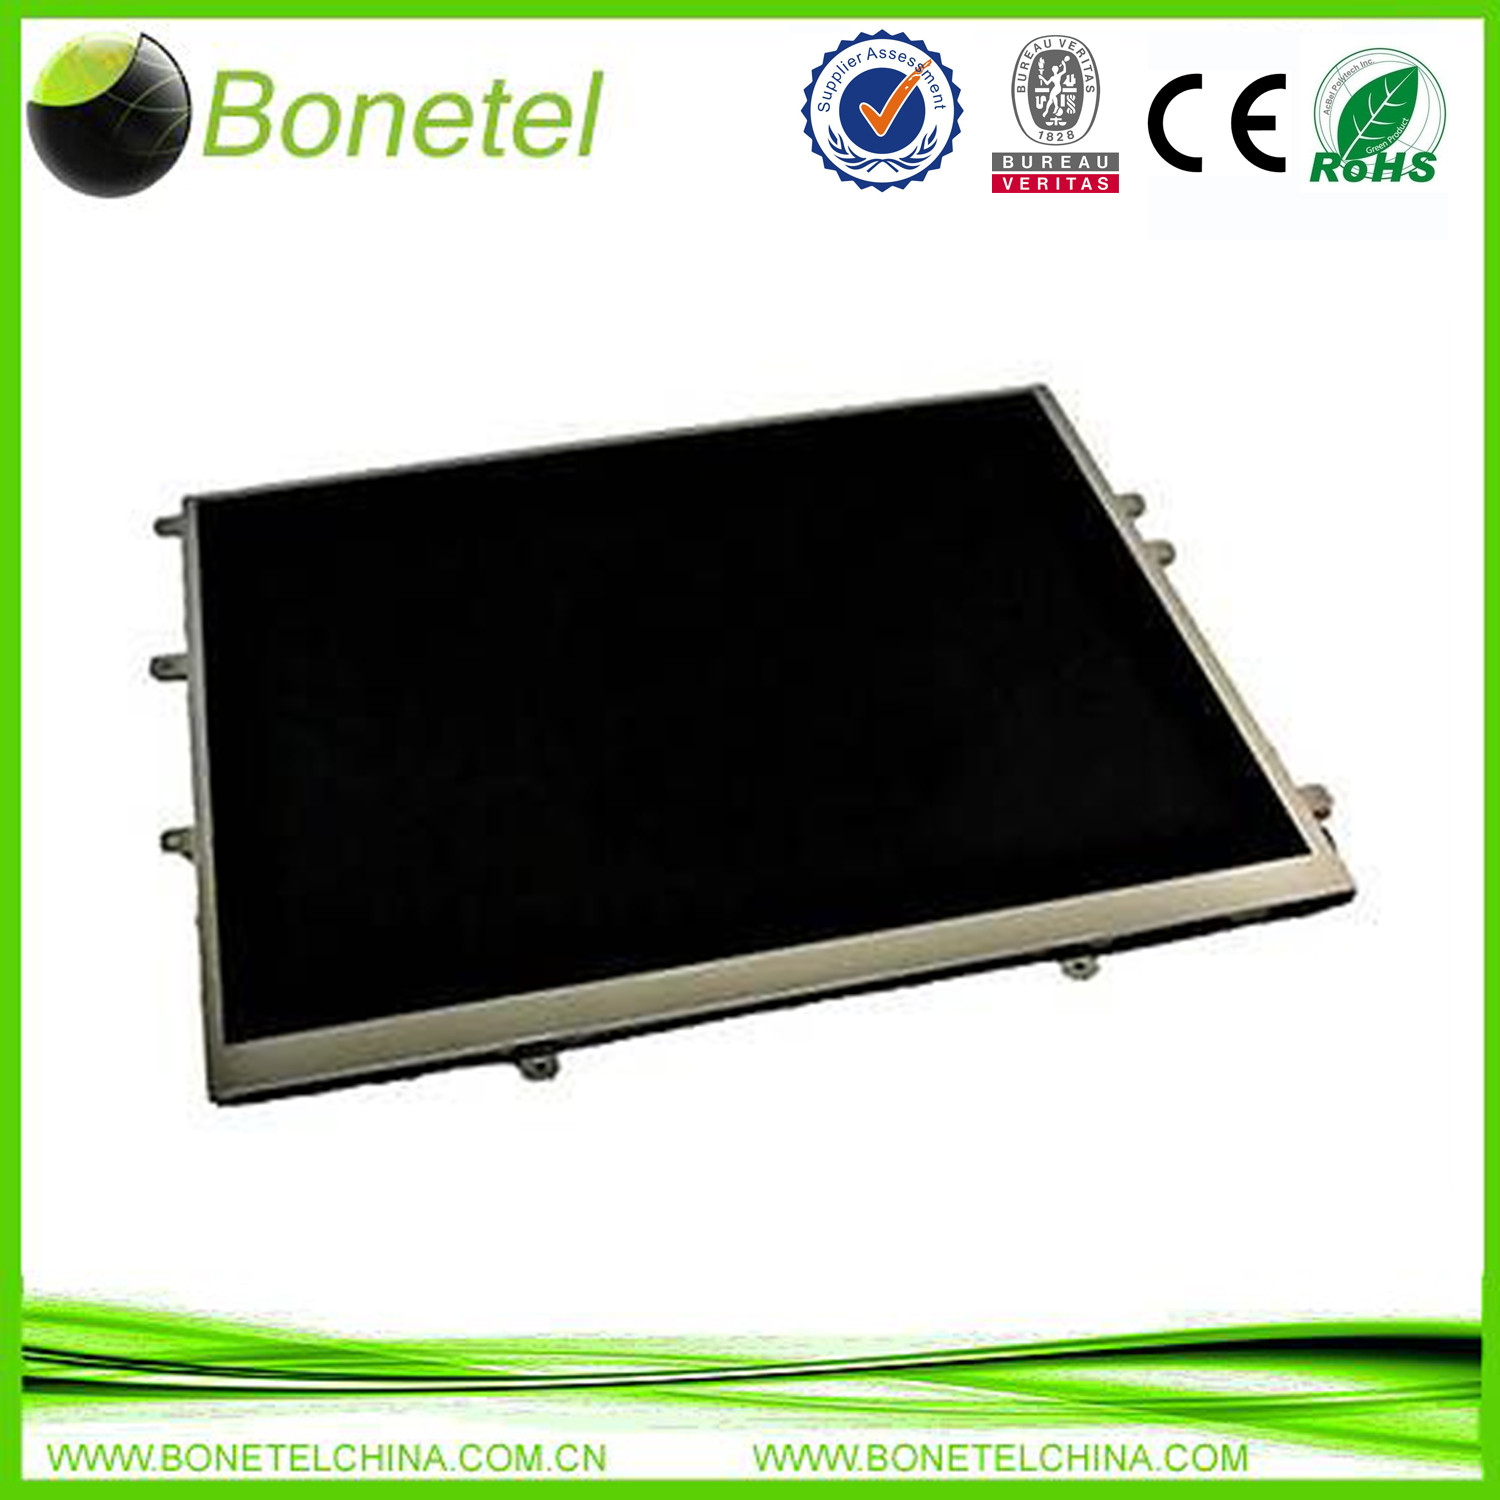 NEW LCD Display Screen Replacement Part 9.7 inches for Apple iPad 1st Gen